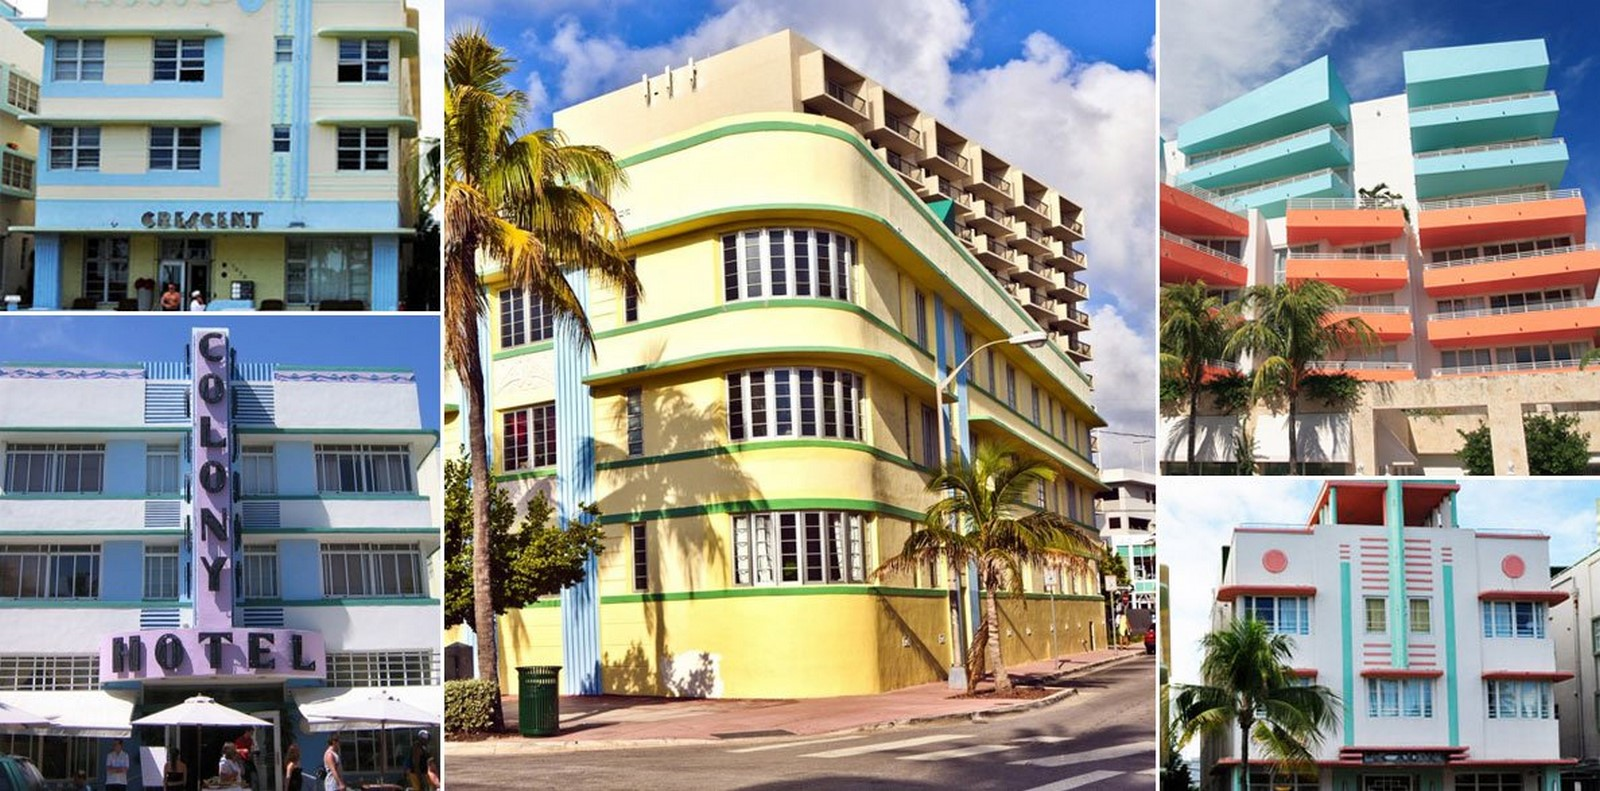 10 Example of Art Deco Architecture in the United States